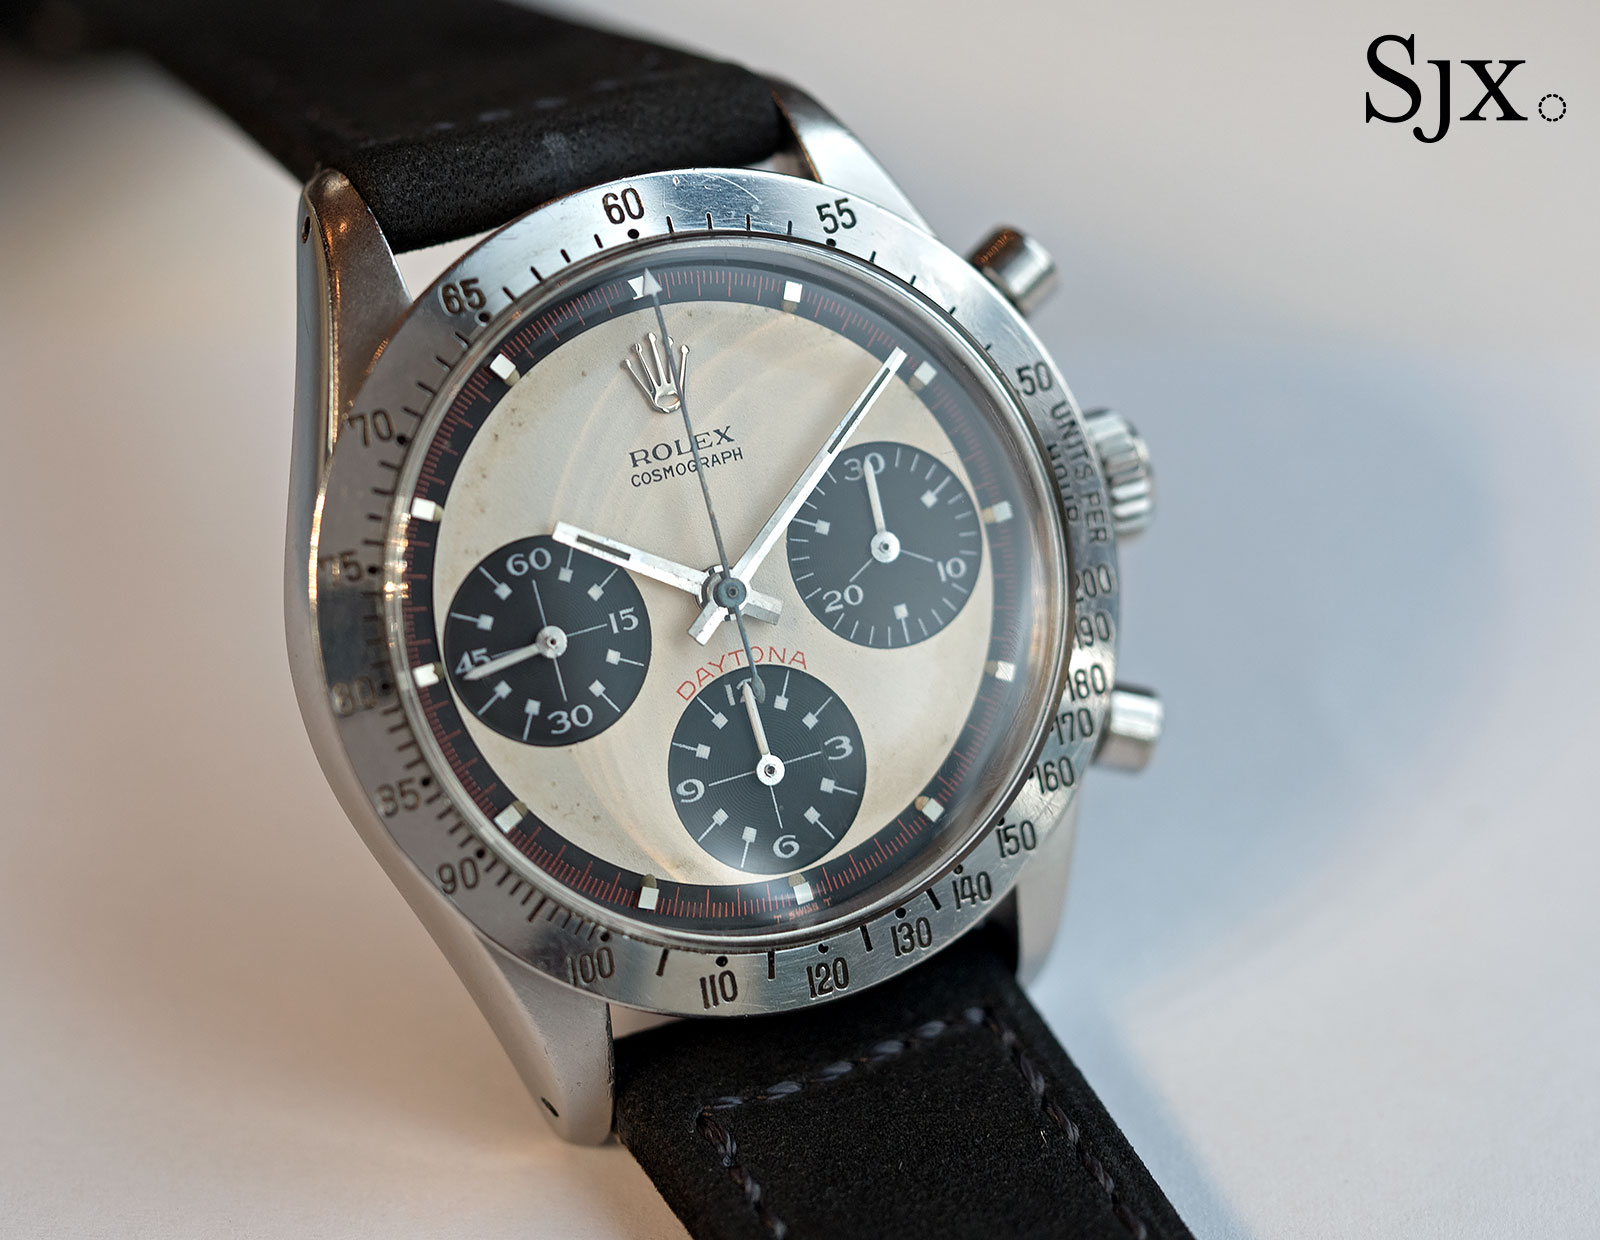 Hands On With Paul Newman S Very Own Paul Newman Daytona Sjx Watches